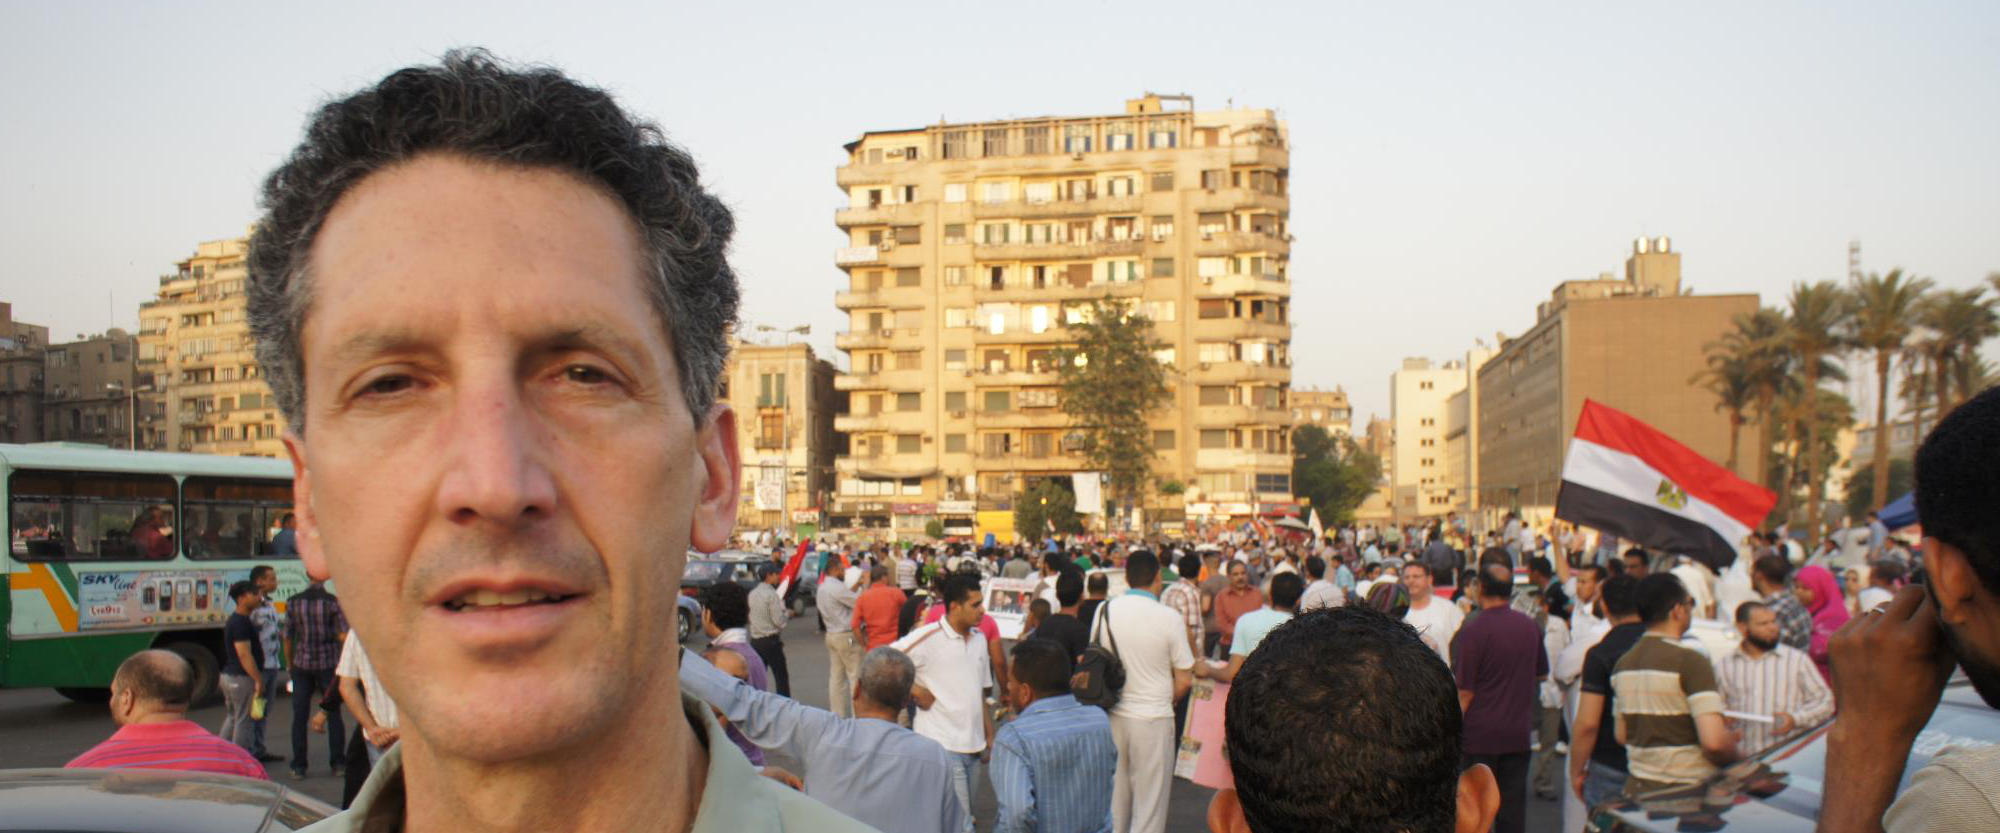 Joseph in Tahrir Square, Cairo, during demonstrations in between rounds of Presidential elections, May, 2012